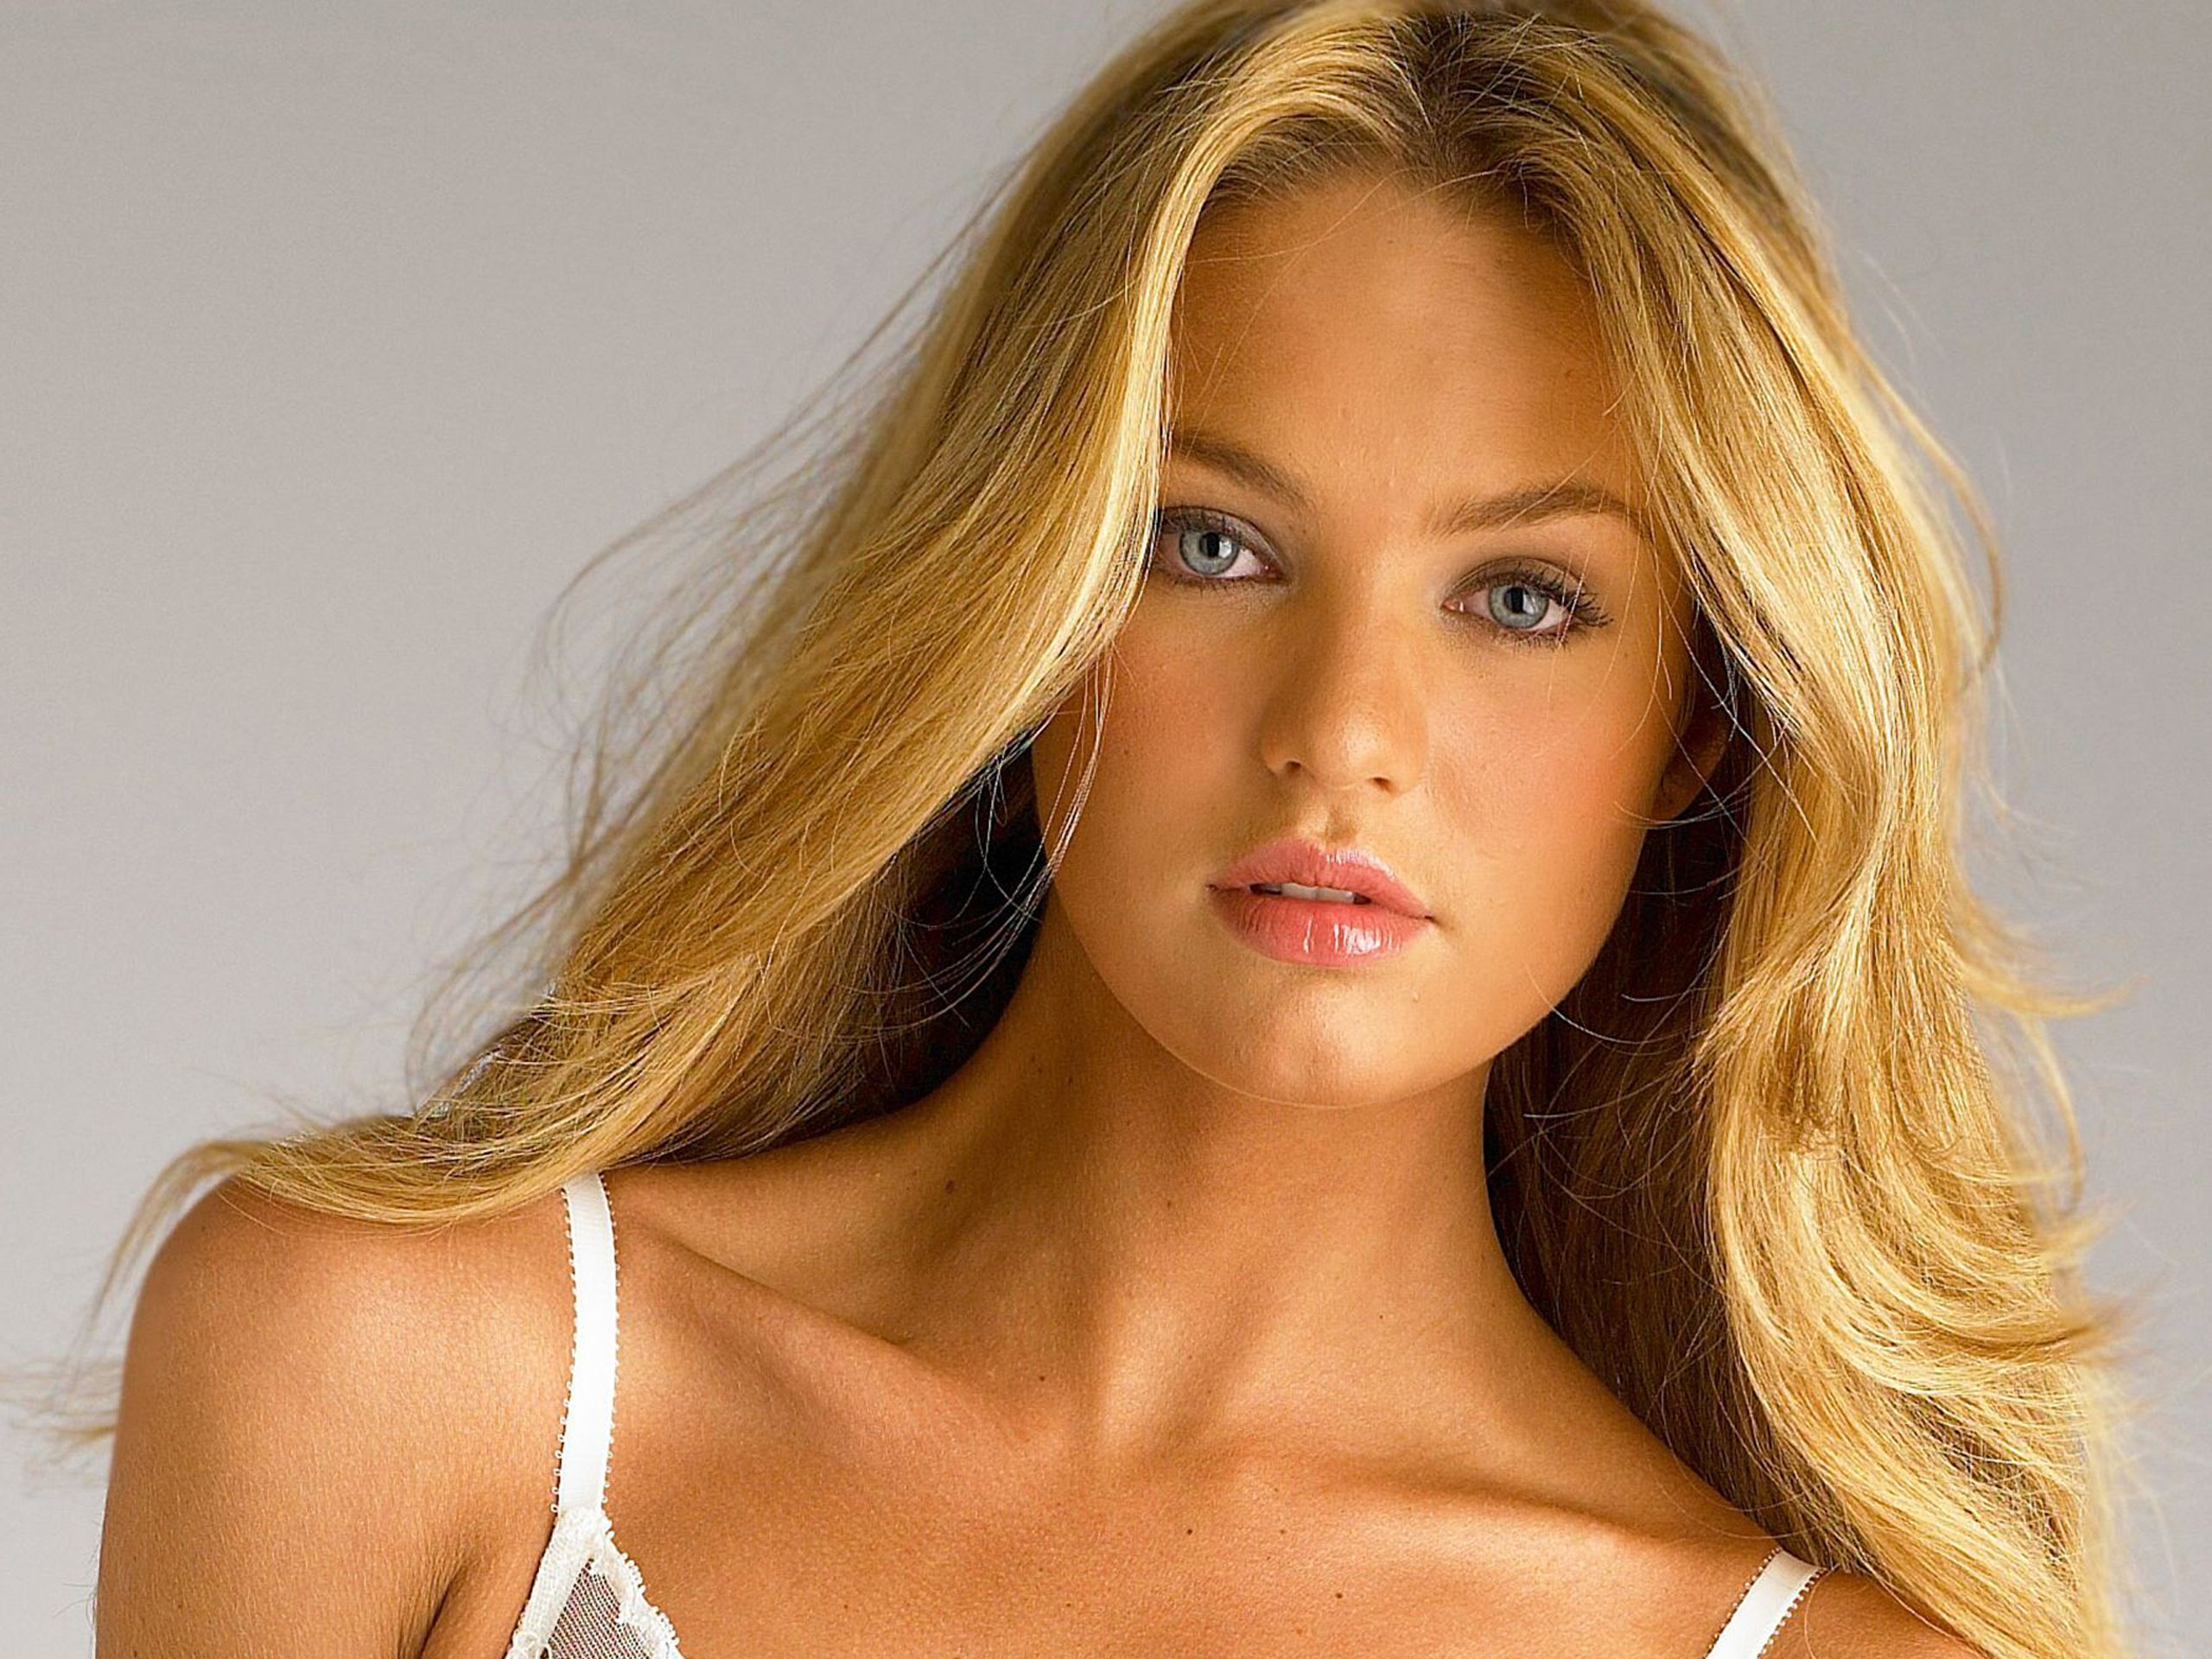 candice swanepoel celebrity faces - photo #17